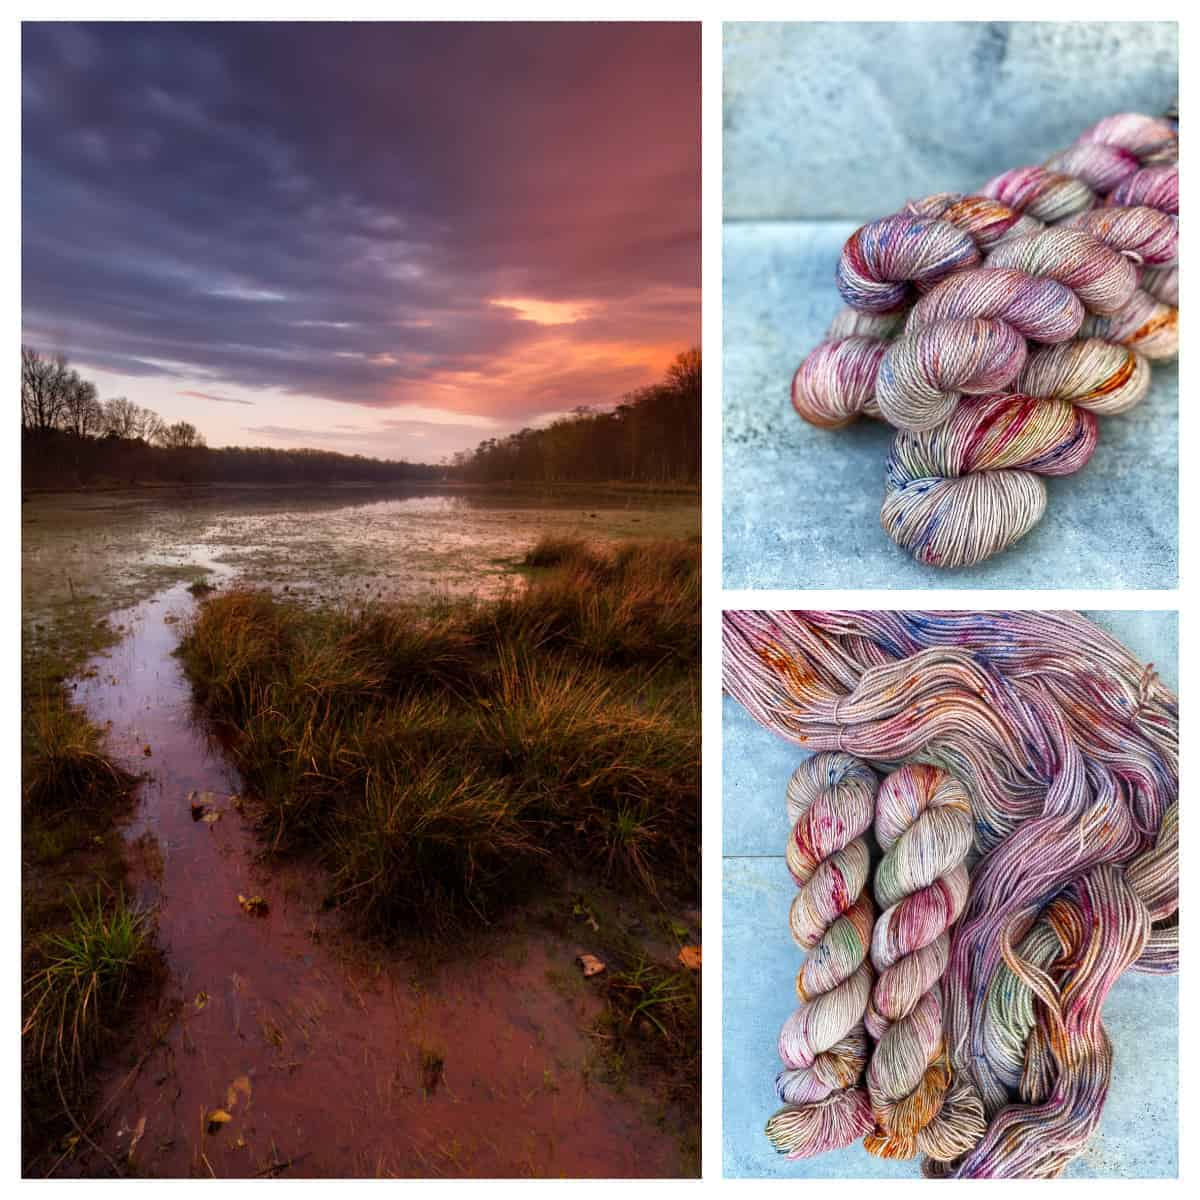 Sunset over wetlands and skeins of pink, purple, gold and green speckled yarn.